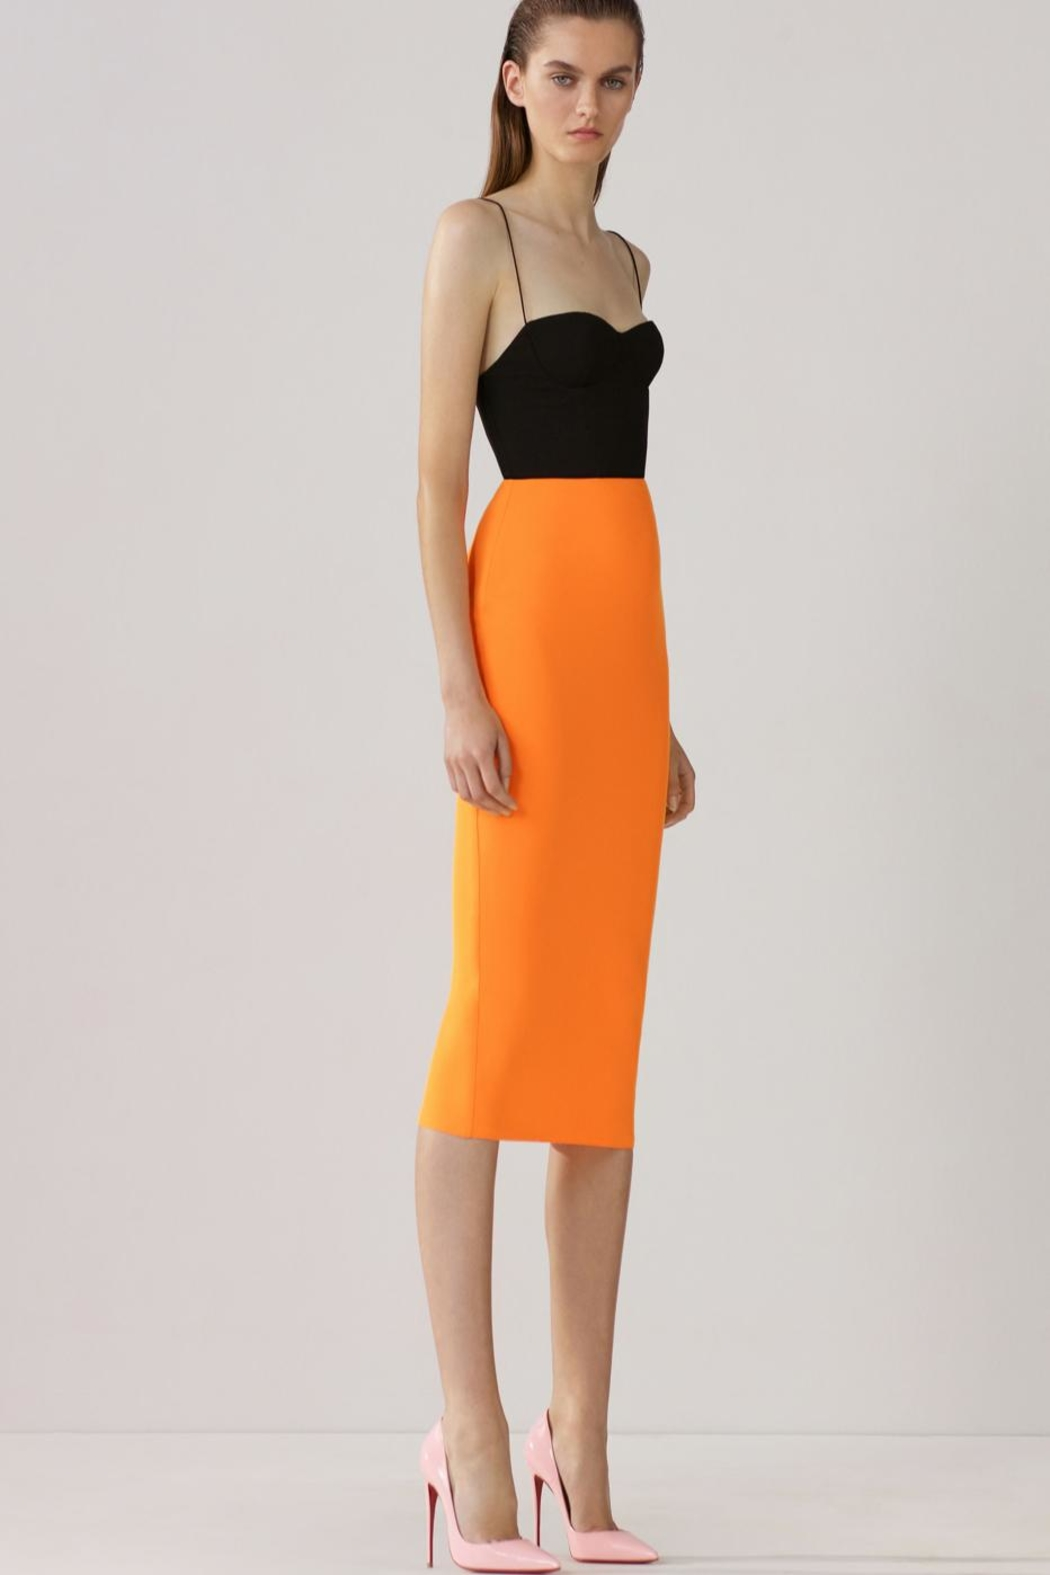 Alex Perry Lee-Crepe Two-Tone Dress - Main Image